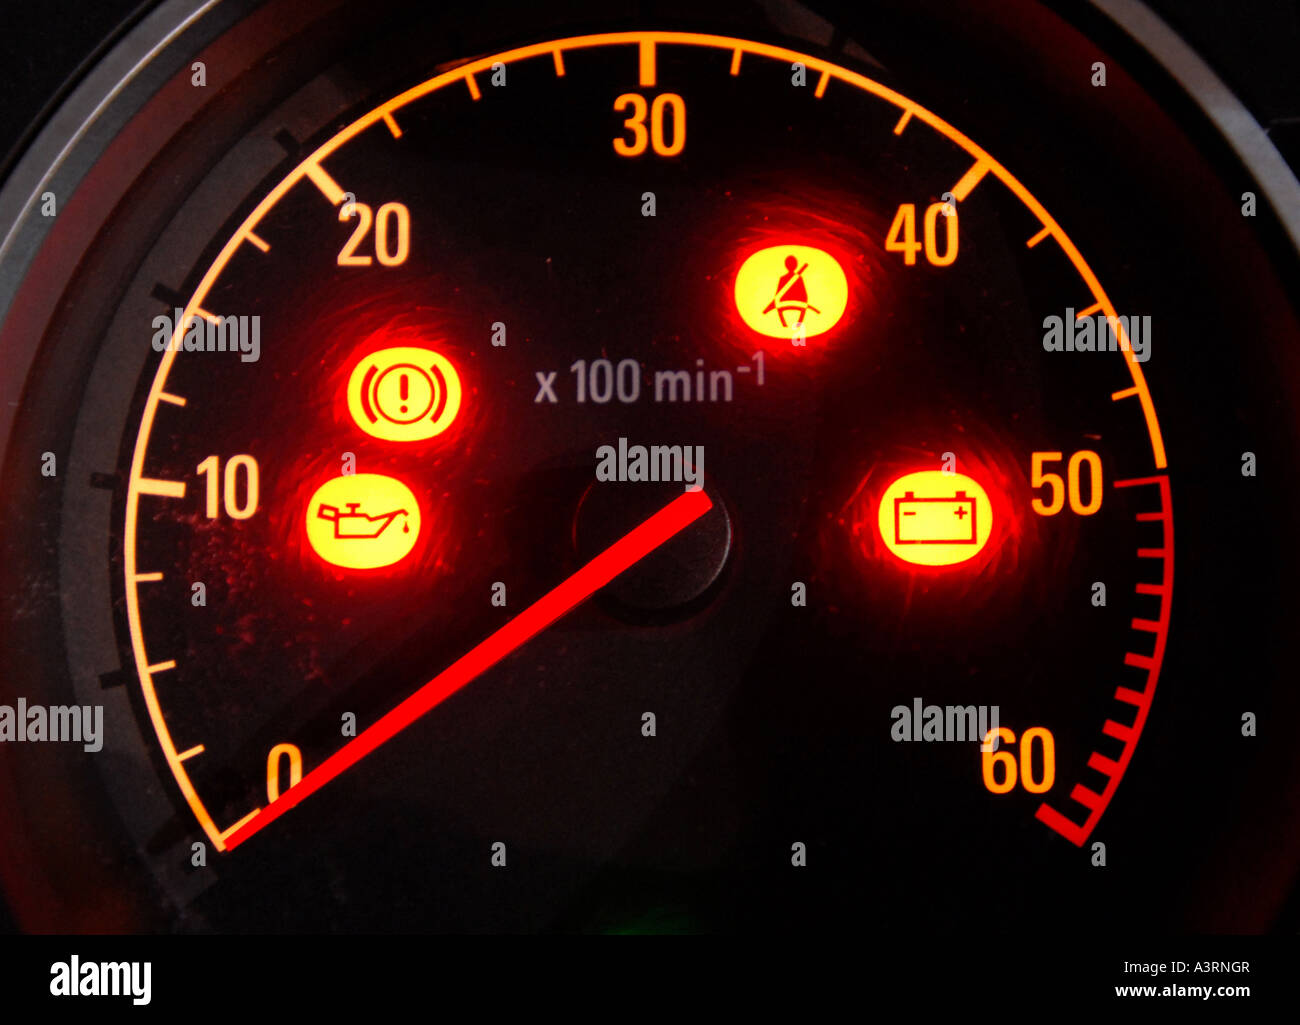 CAR WARNING LIGHTS IN ILLUMINATED DASHBOARD DIAL RE MOTORING SERVICING  COSTS REPAIRS ENGINE MAINTENANCE MECHANICS BREAKDOWNS.UK